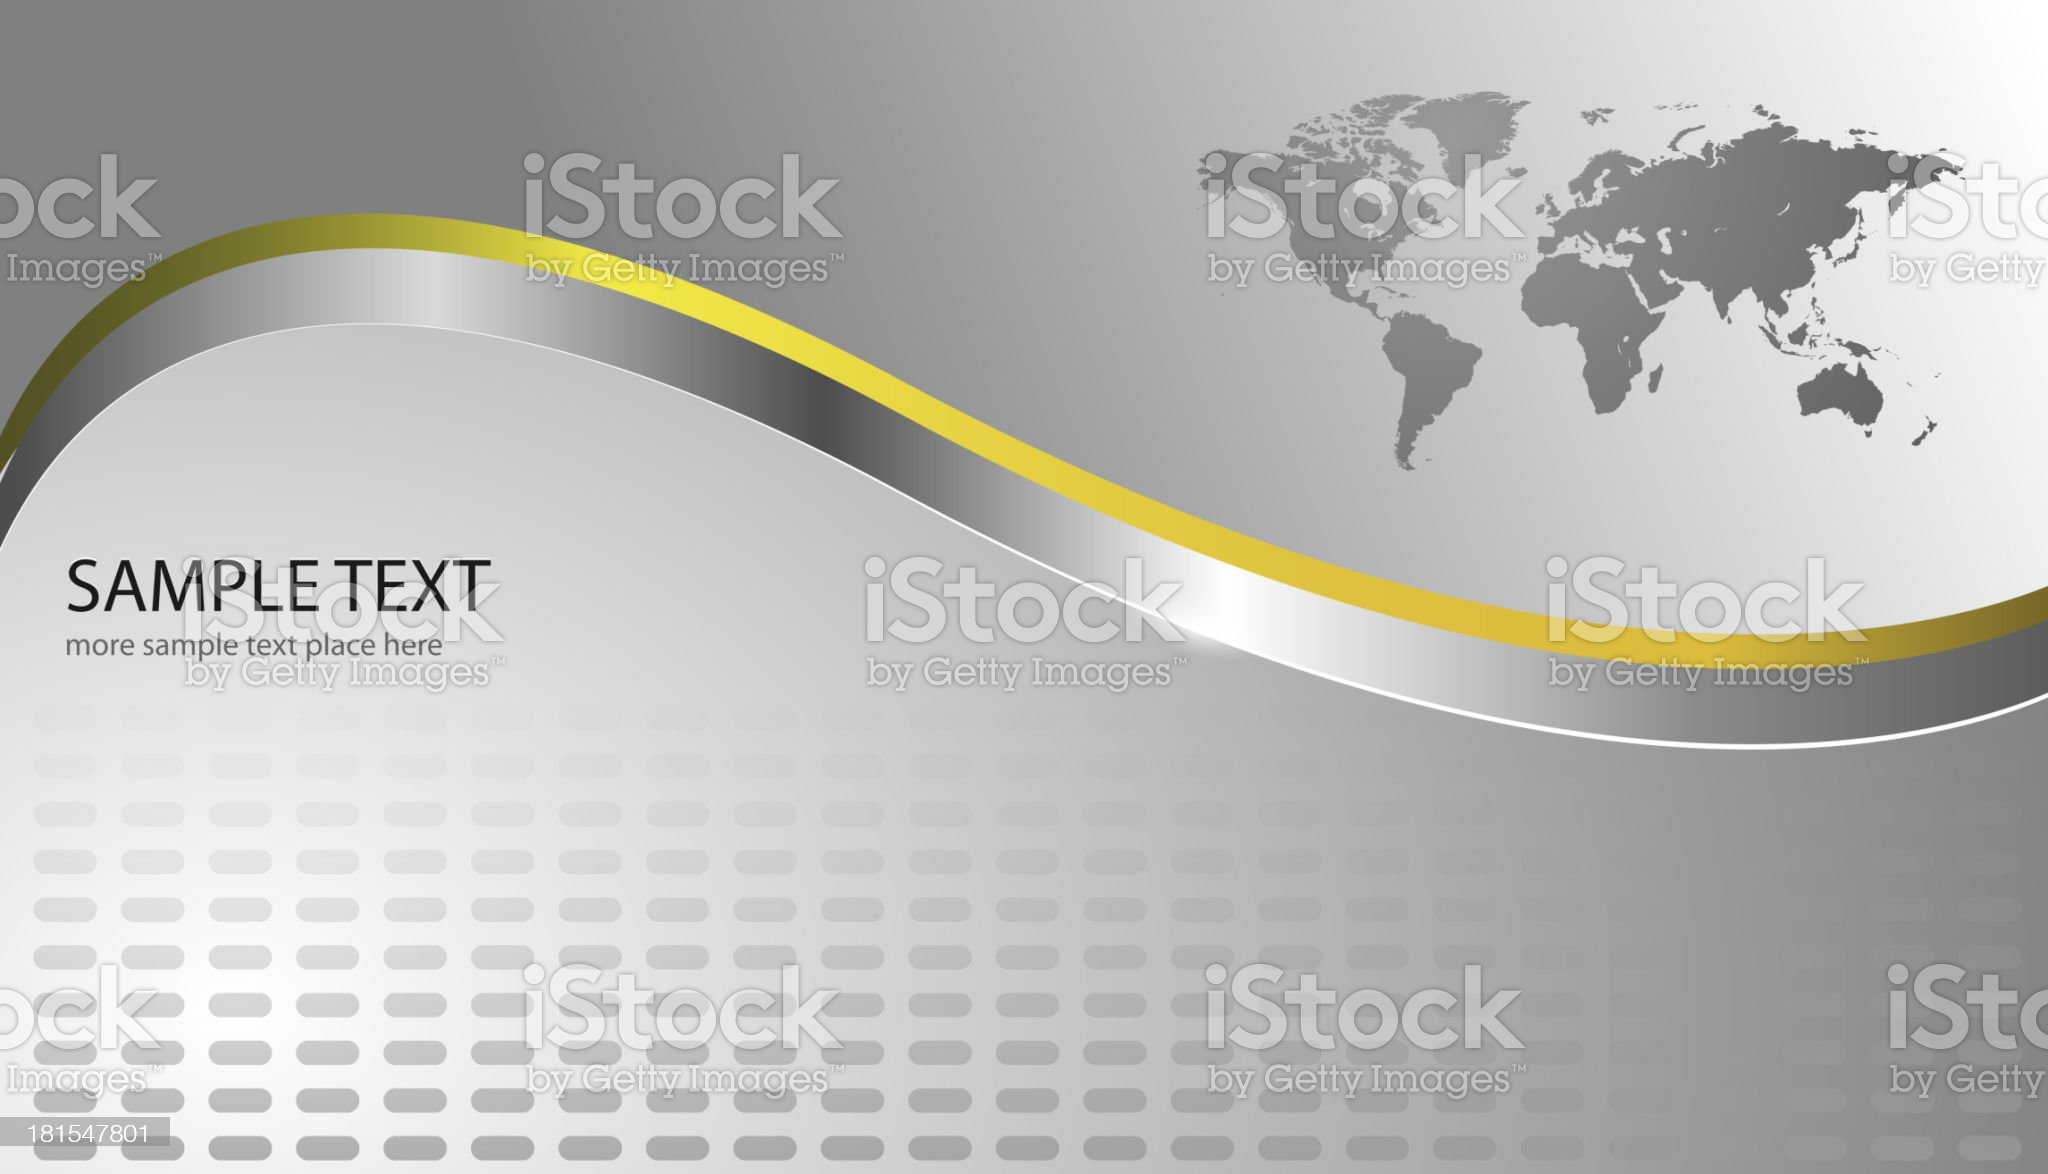 Business background with world map royalty-free stock vector art